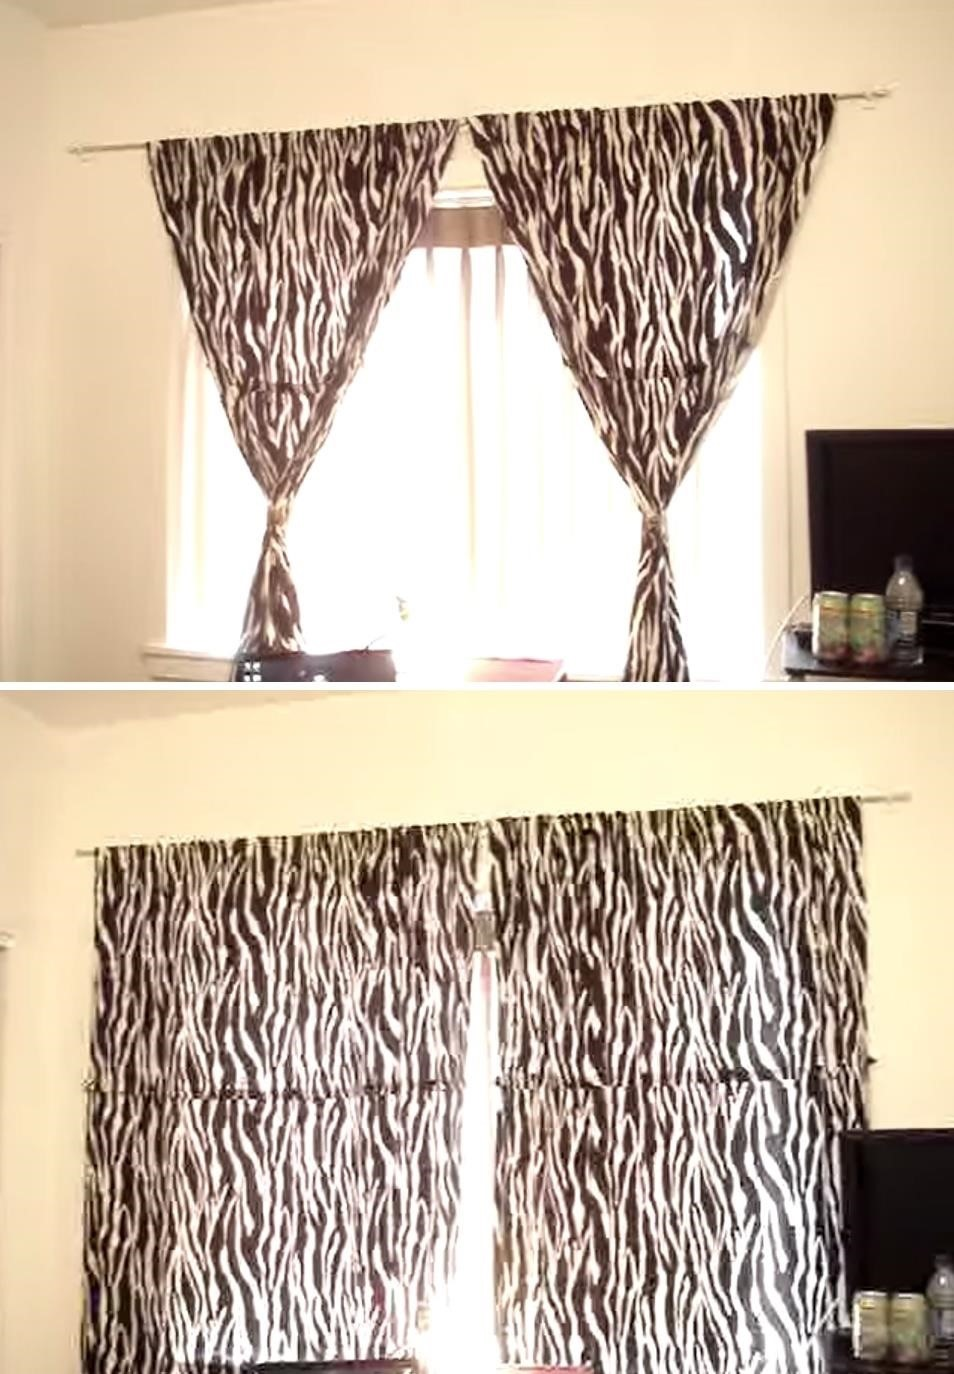 Hang Pictures Without Holes In Wall Part - 45: How To Hang Curtains Without Making Holes In The Wall Interior